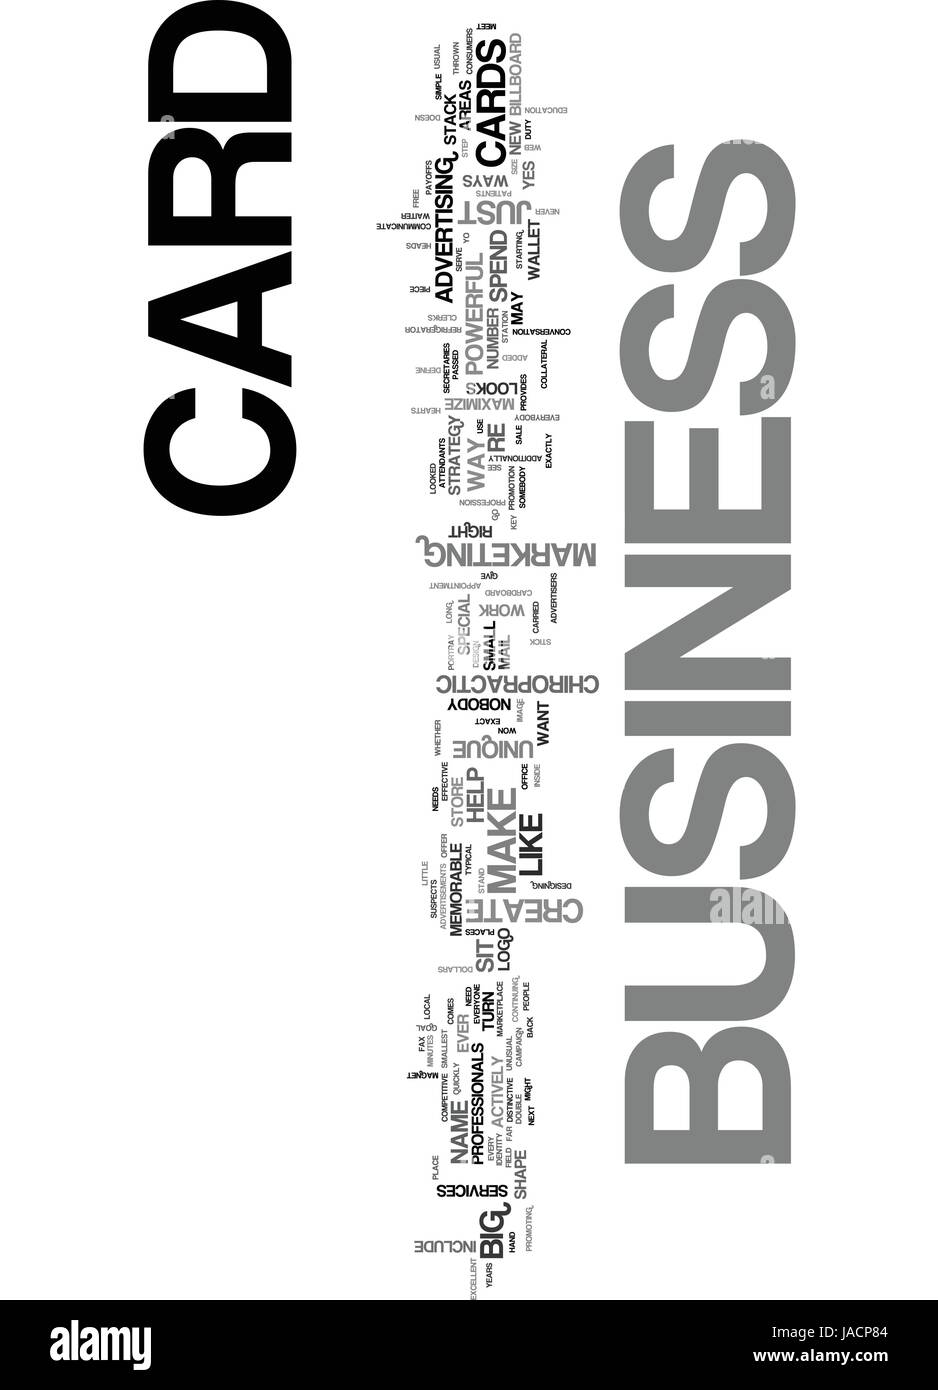 What s on your business card text word cloud concept stock vector what s on your business card text word cloud concept reheart Choice Image